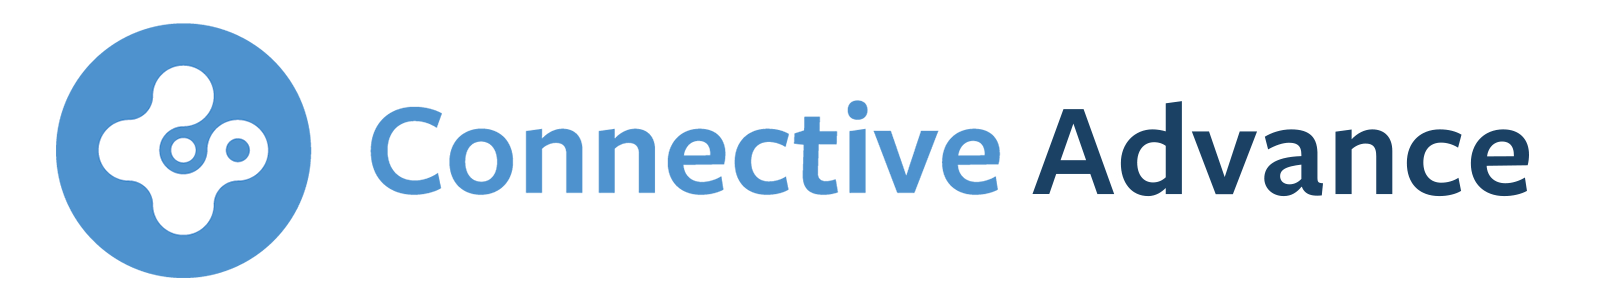 Connective Advance logo